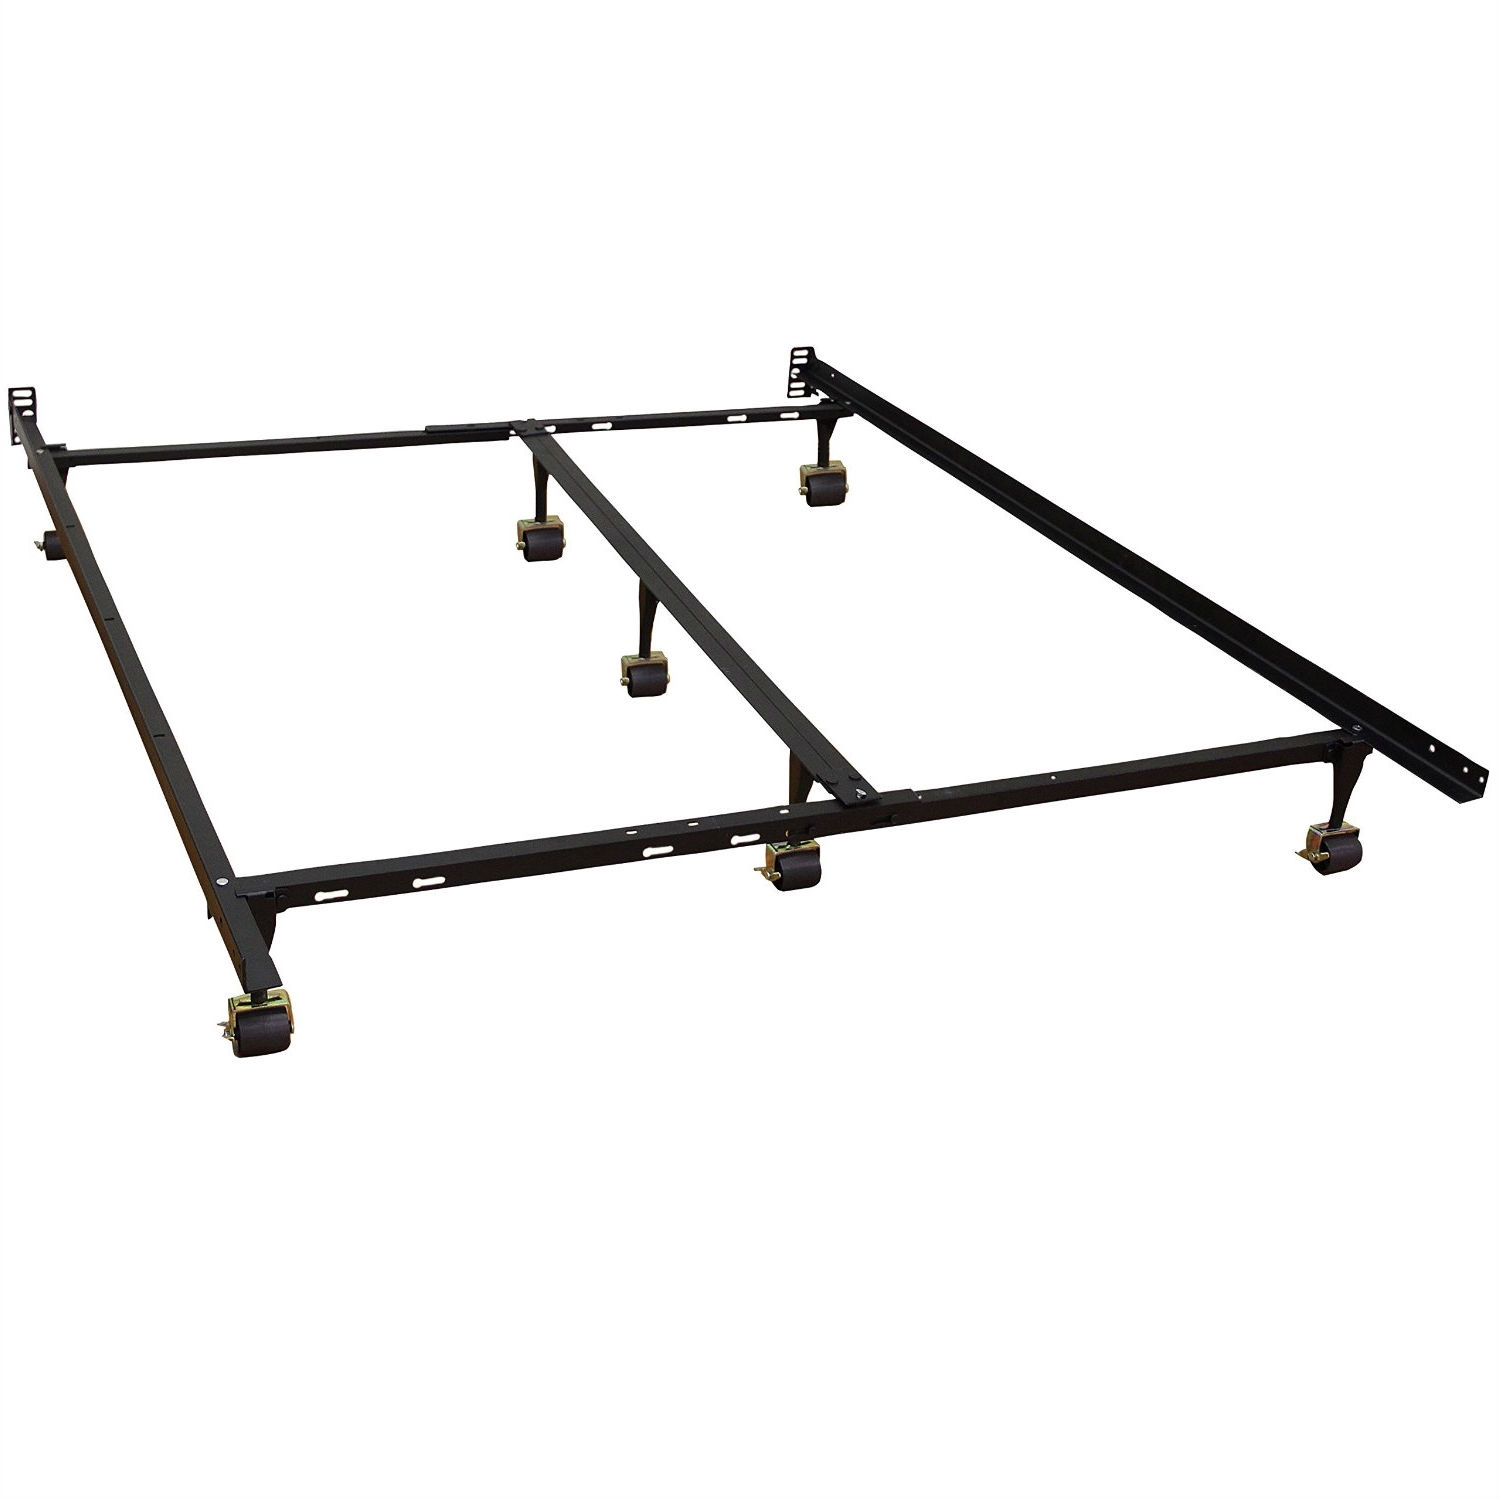 Full Size Sturdy Metal Bed Frame With 7 Legs Locking